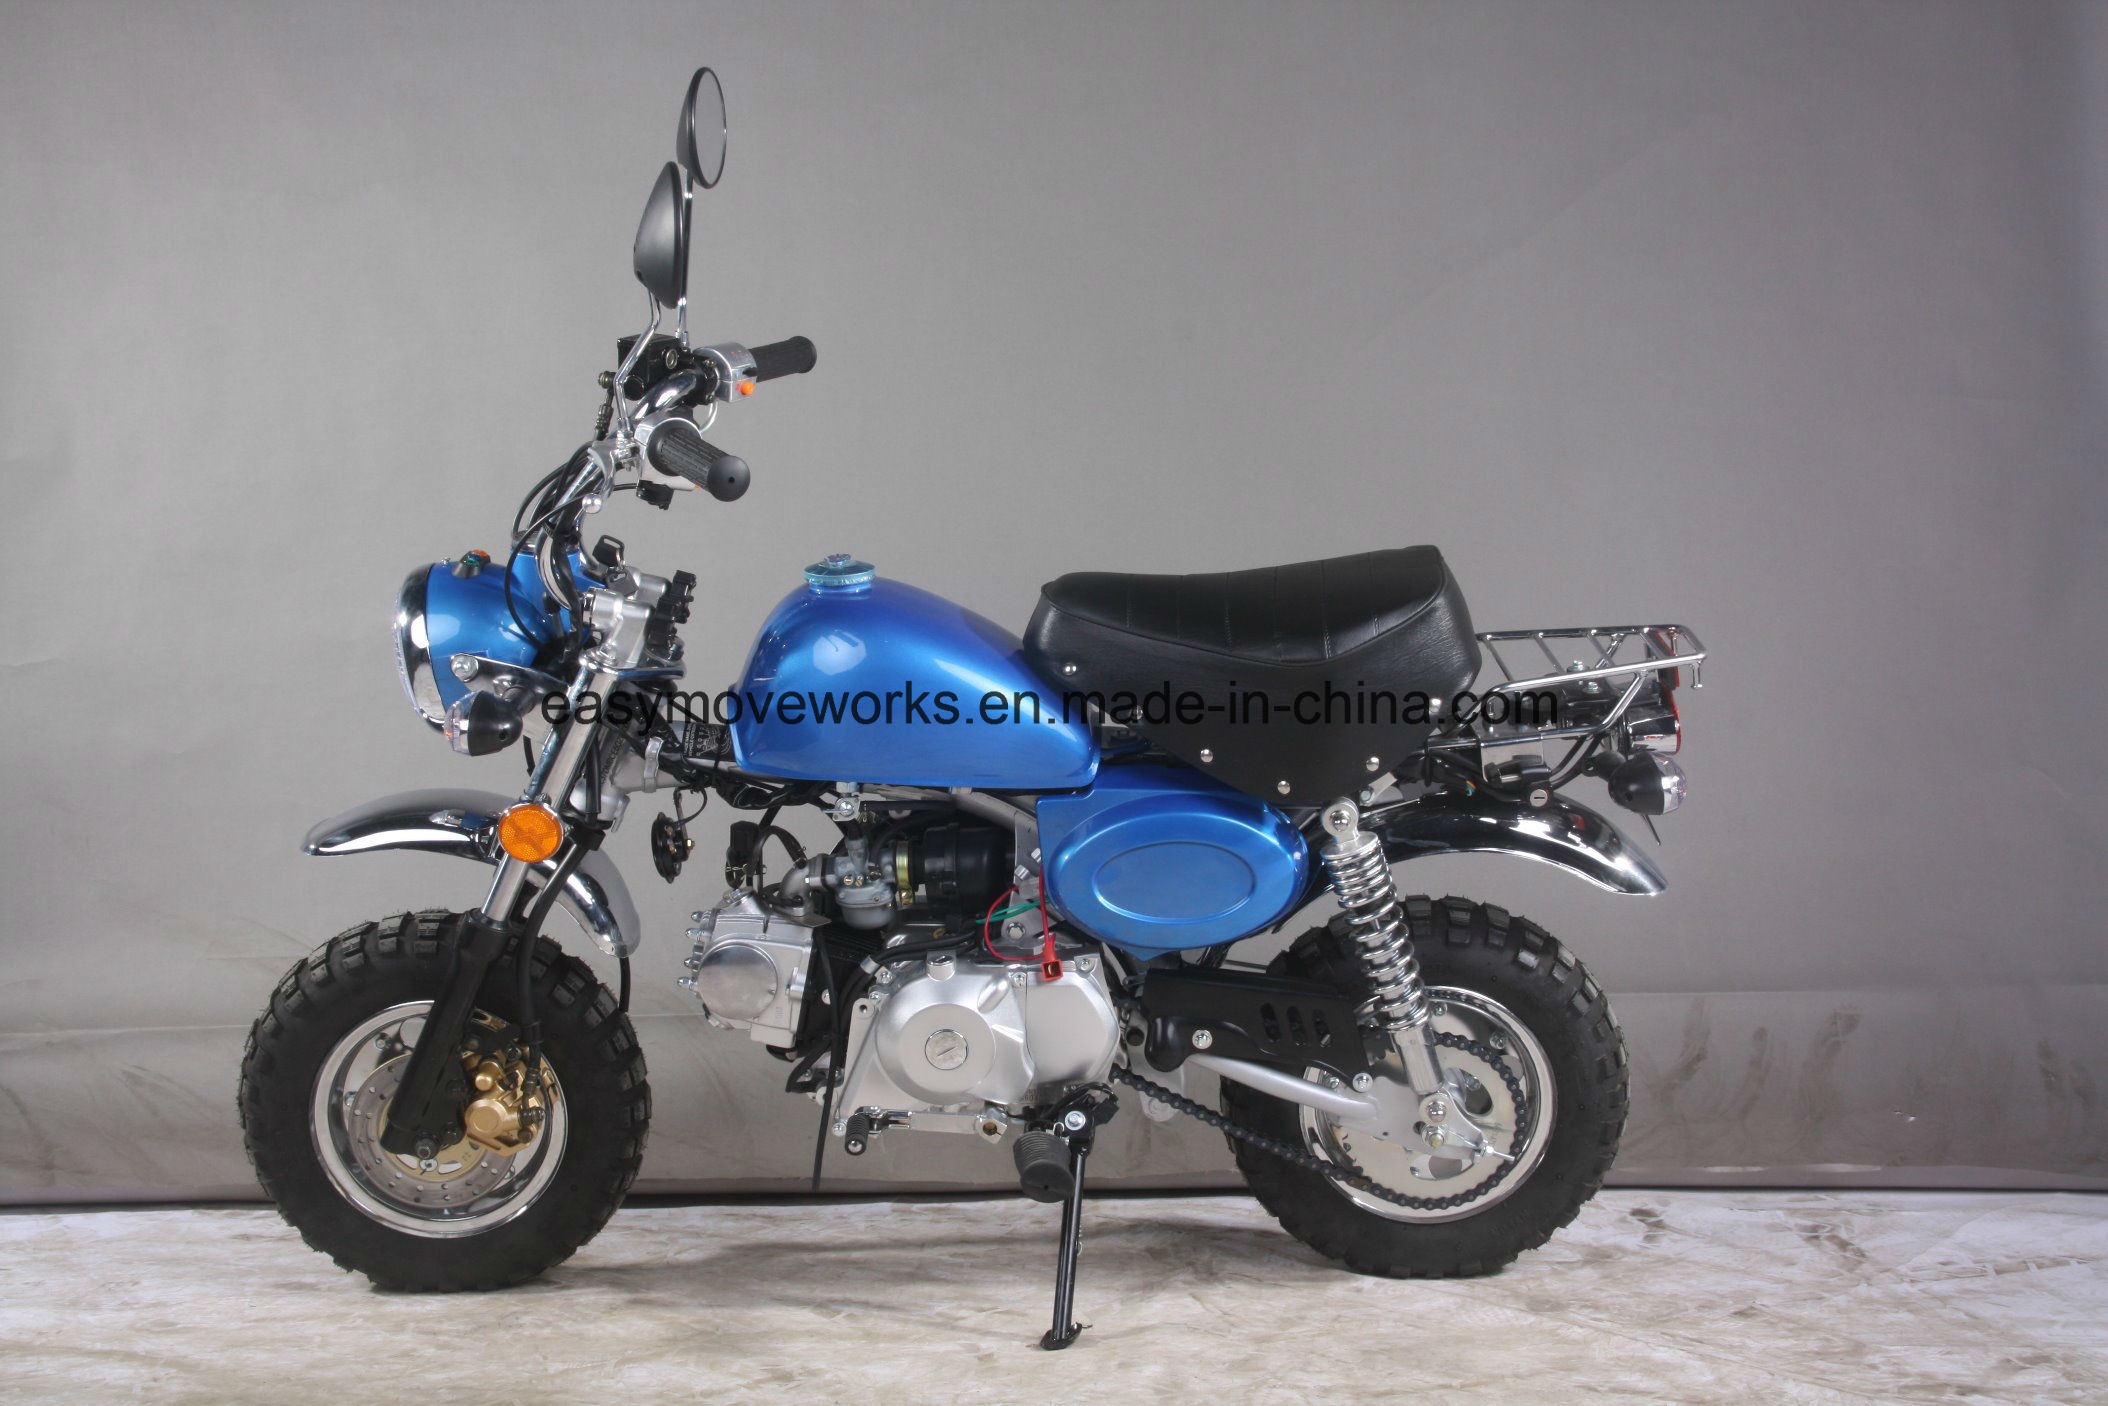 Zhenhua Classic Motorcycle Monkey Bike 125cc Euro4 Efi pictures & photos